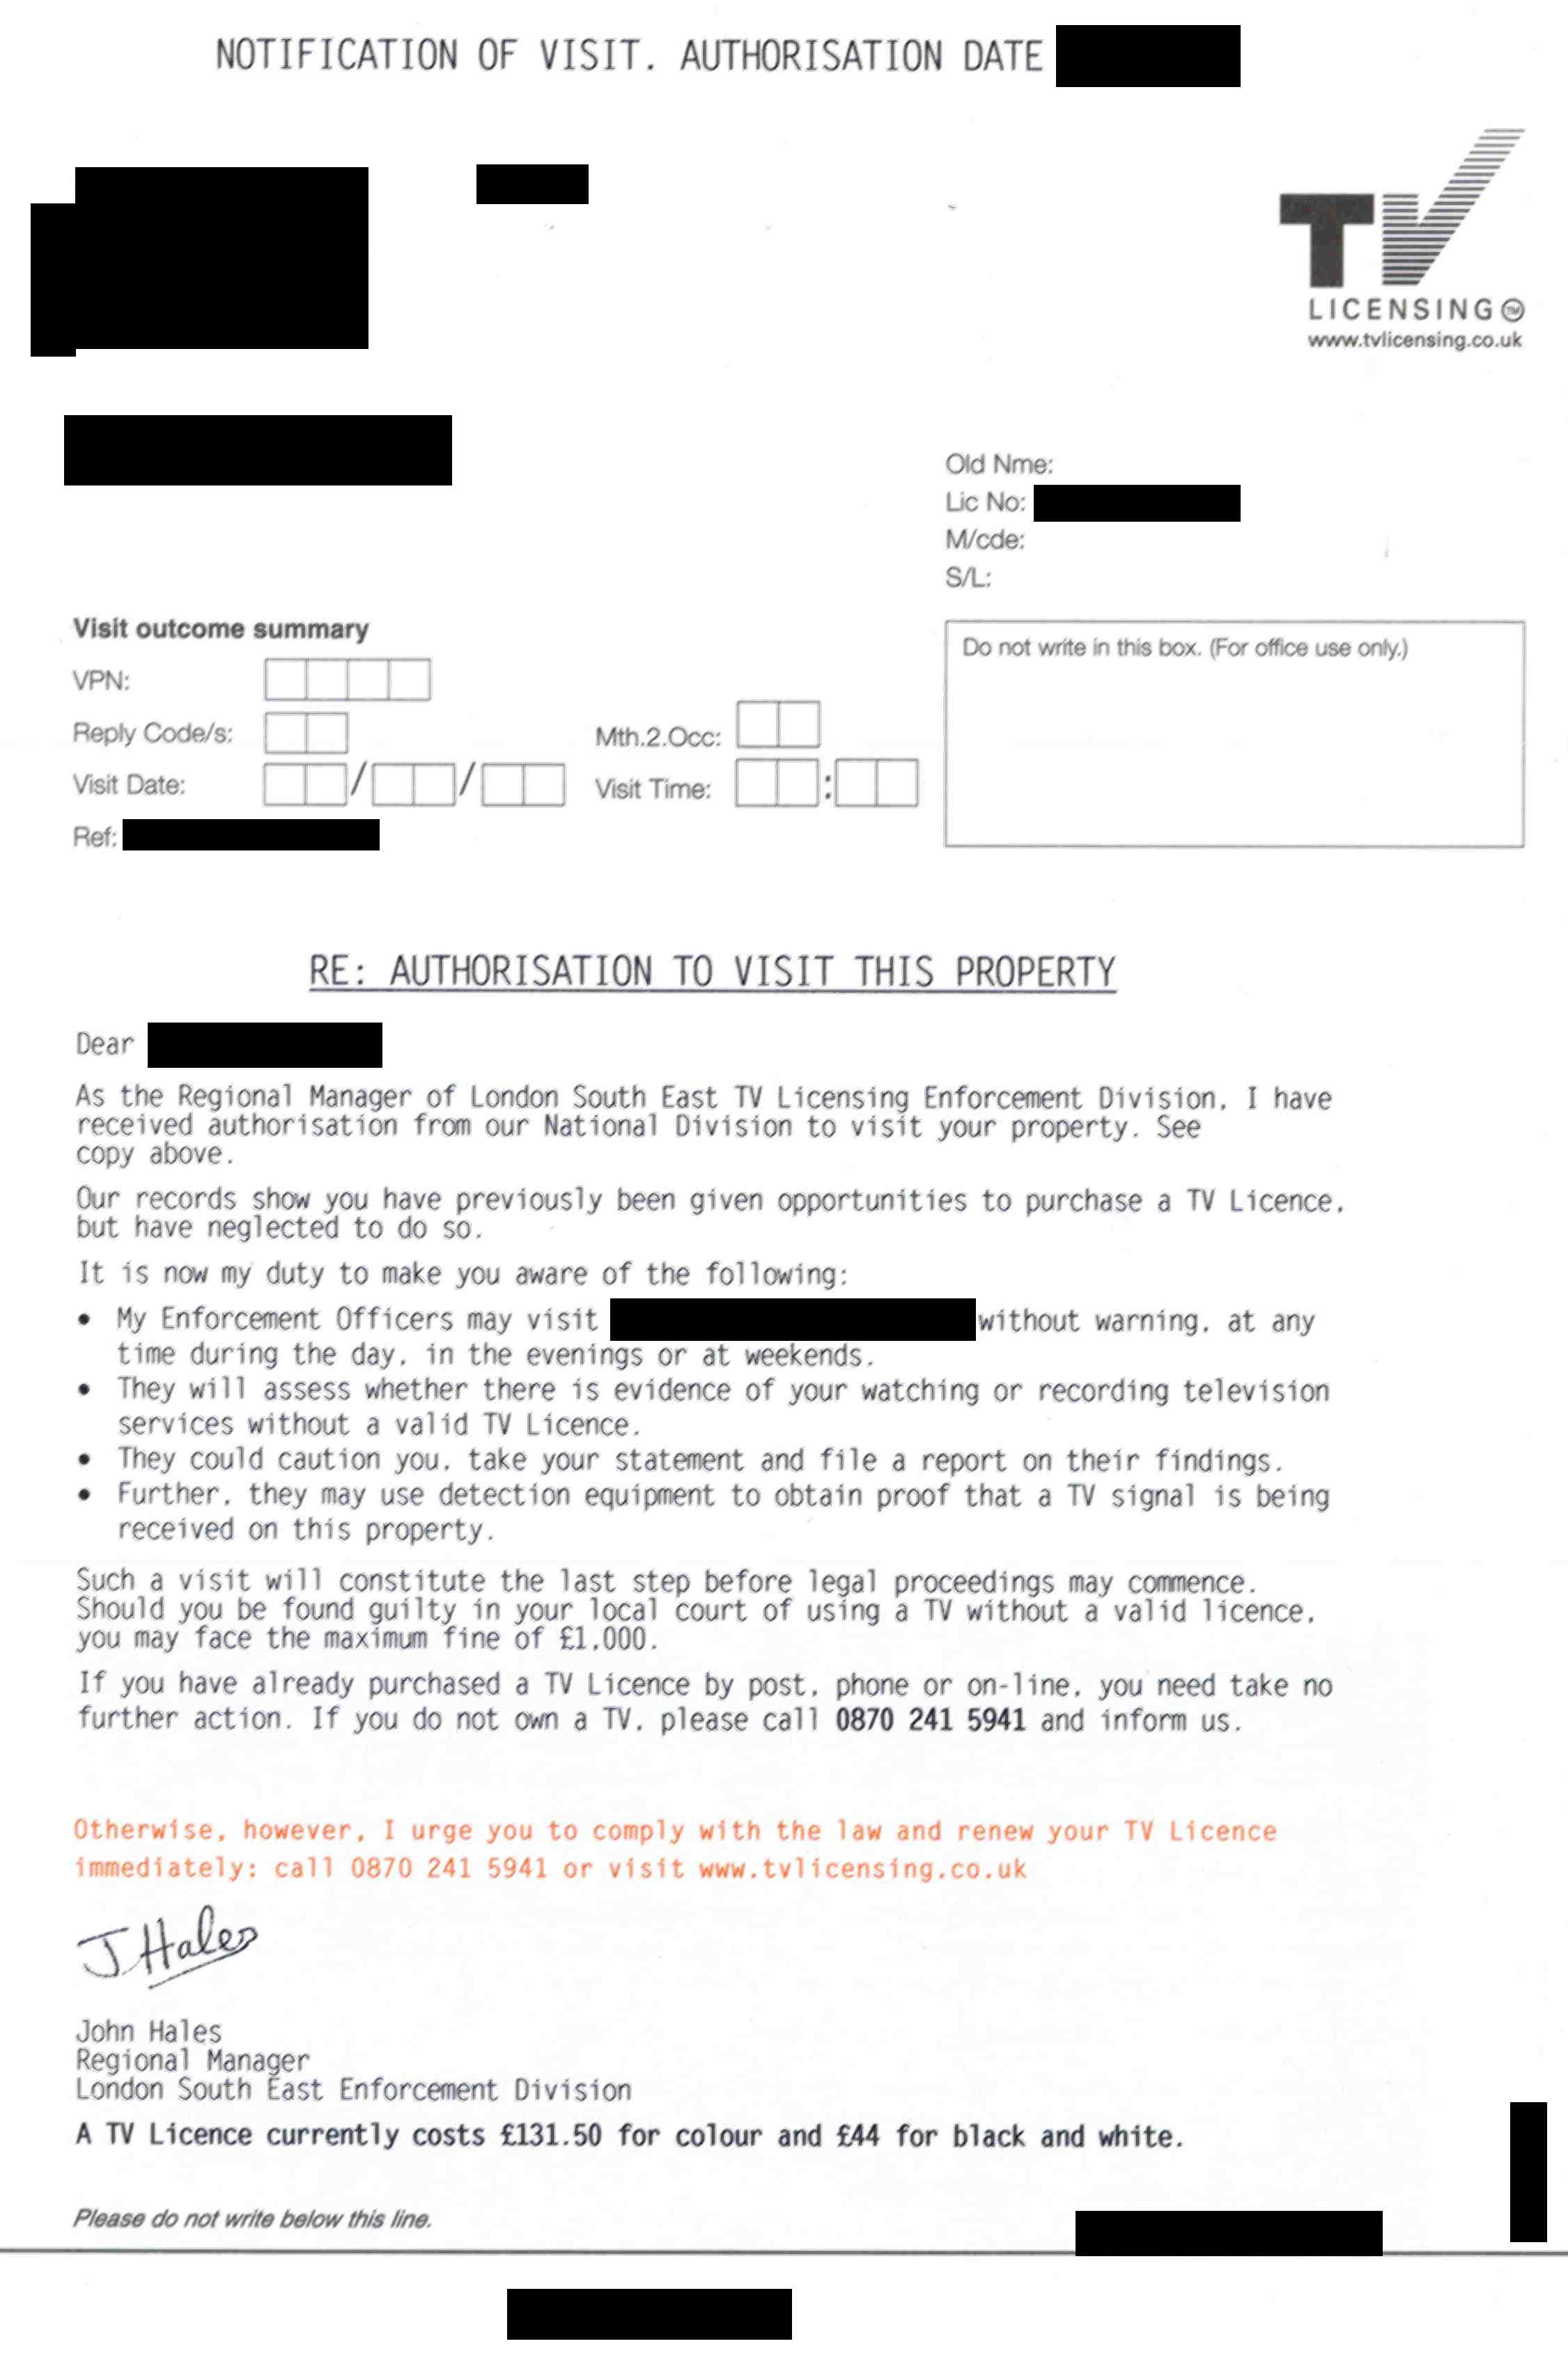 Letters from bbc television licensing2006 television licensing visit letter thecheapjerseys Gallery